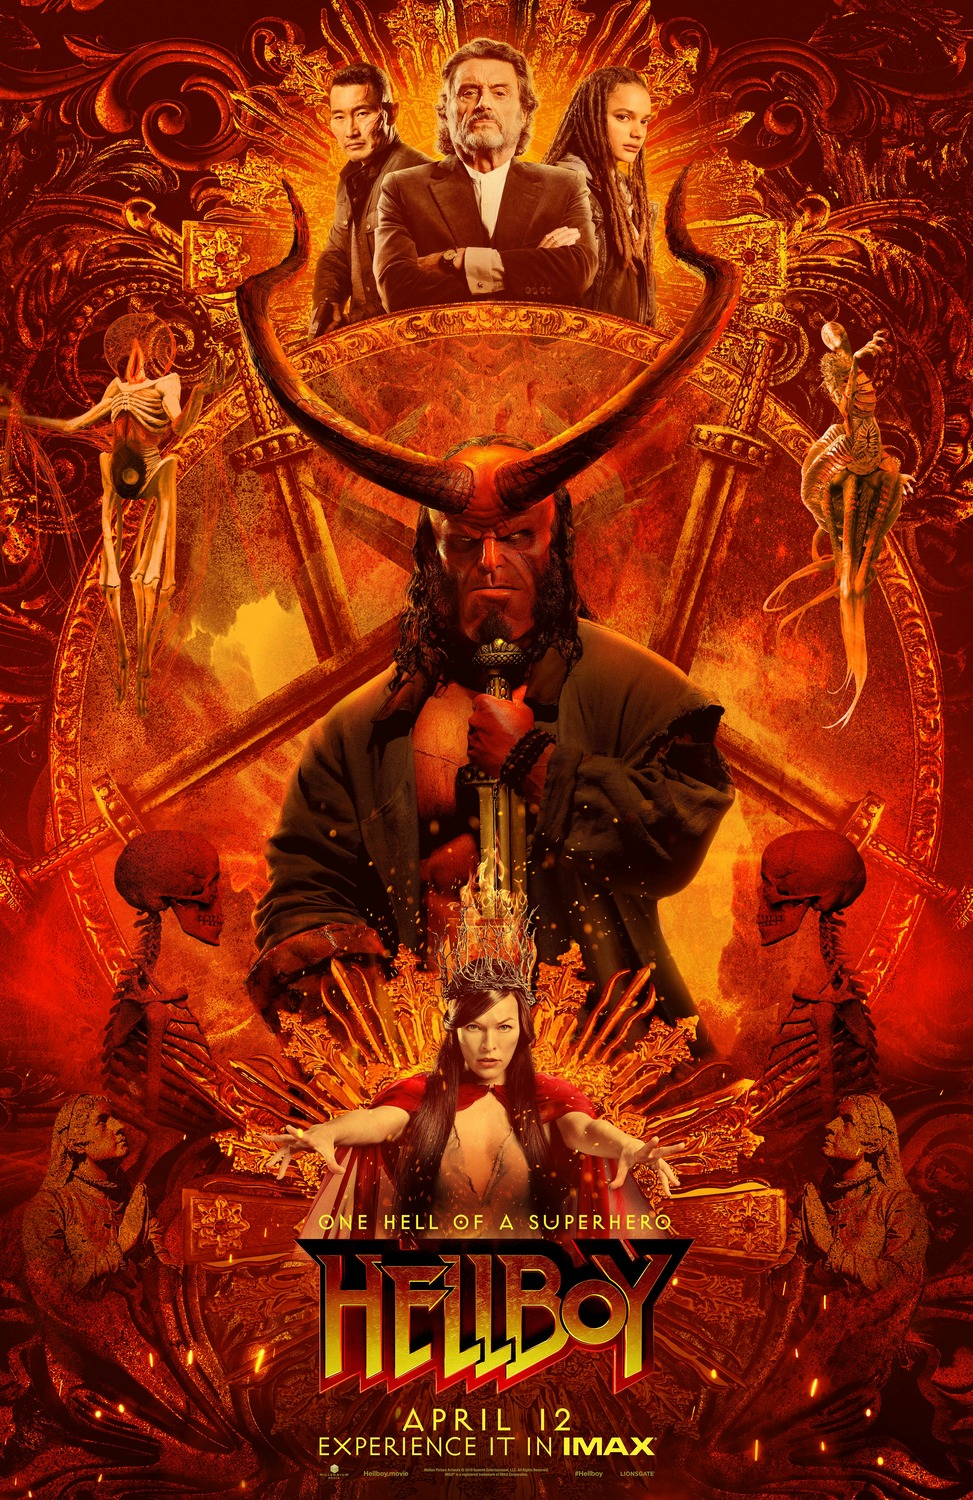 Hellboy film review: righteous reboot or unholy failure?